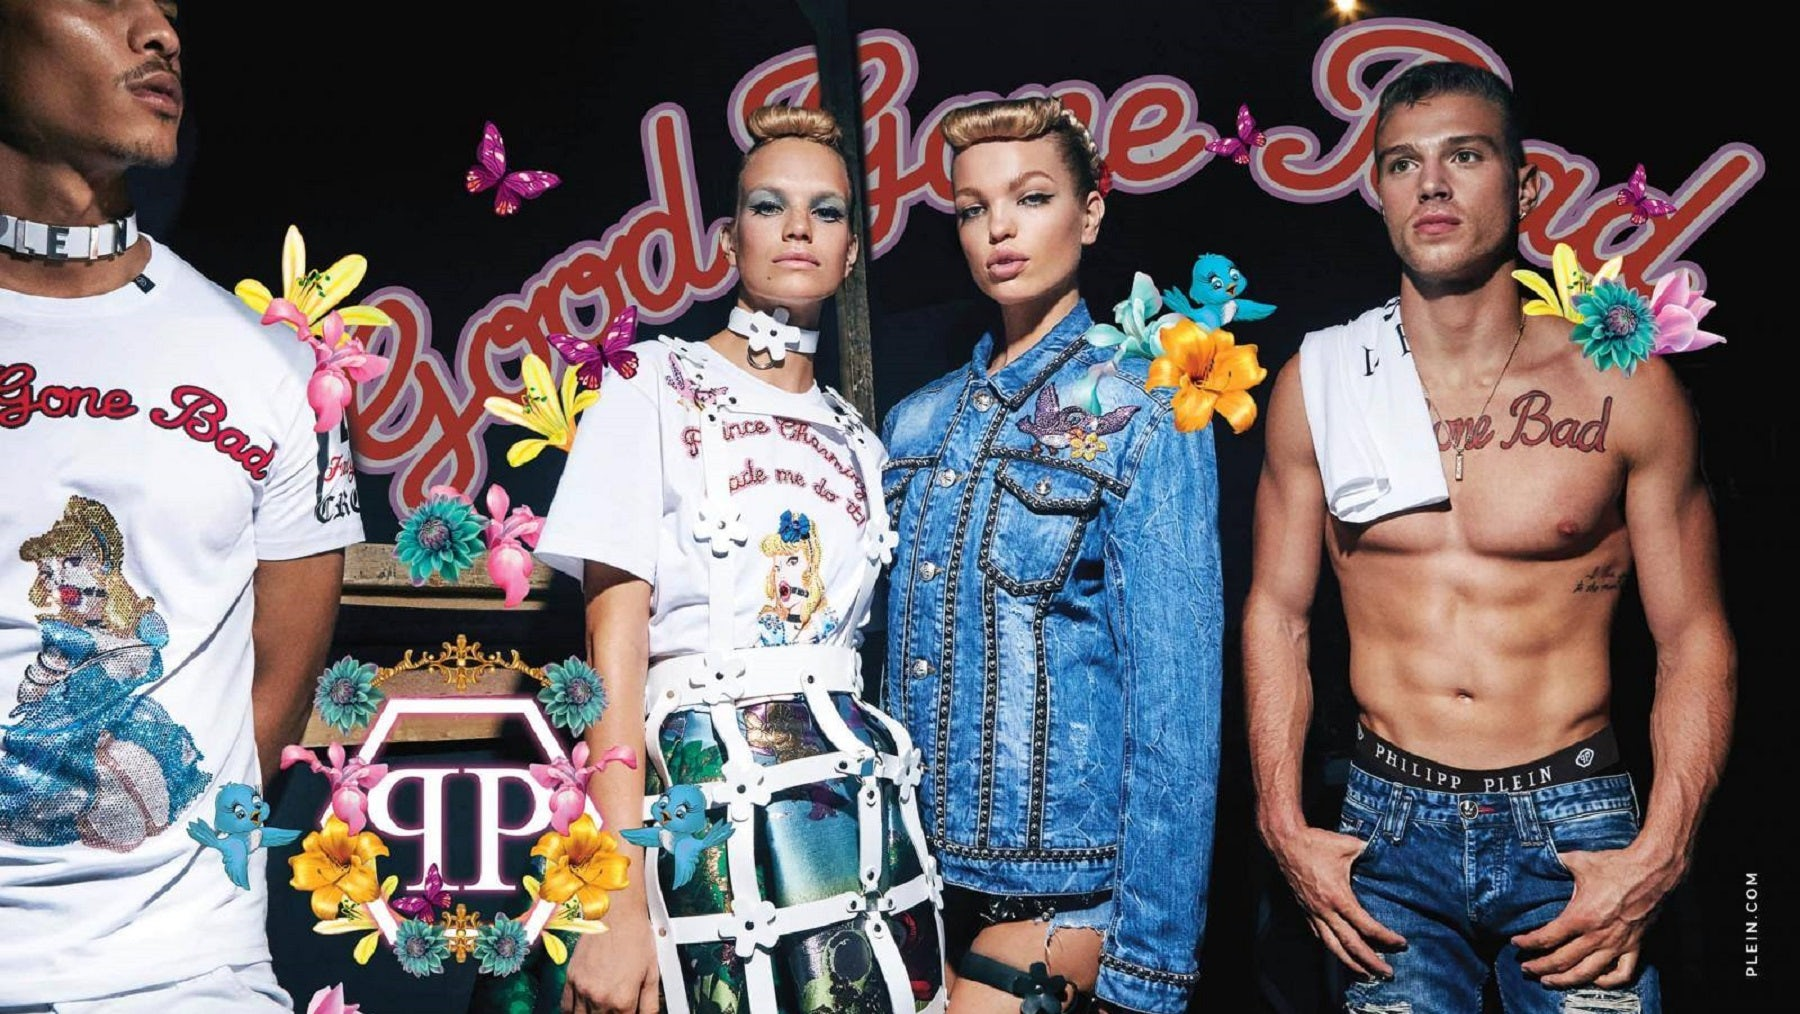 Philipp Plein Spring/Summer 2018 campaign | Source: Philipp Plein